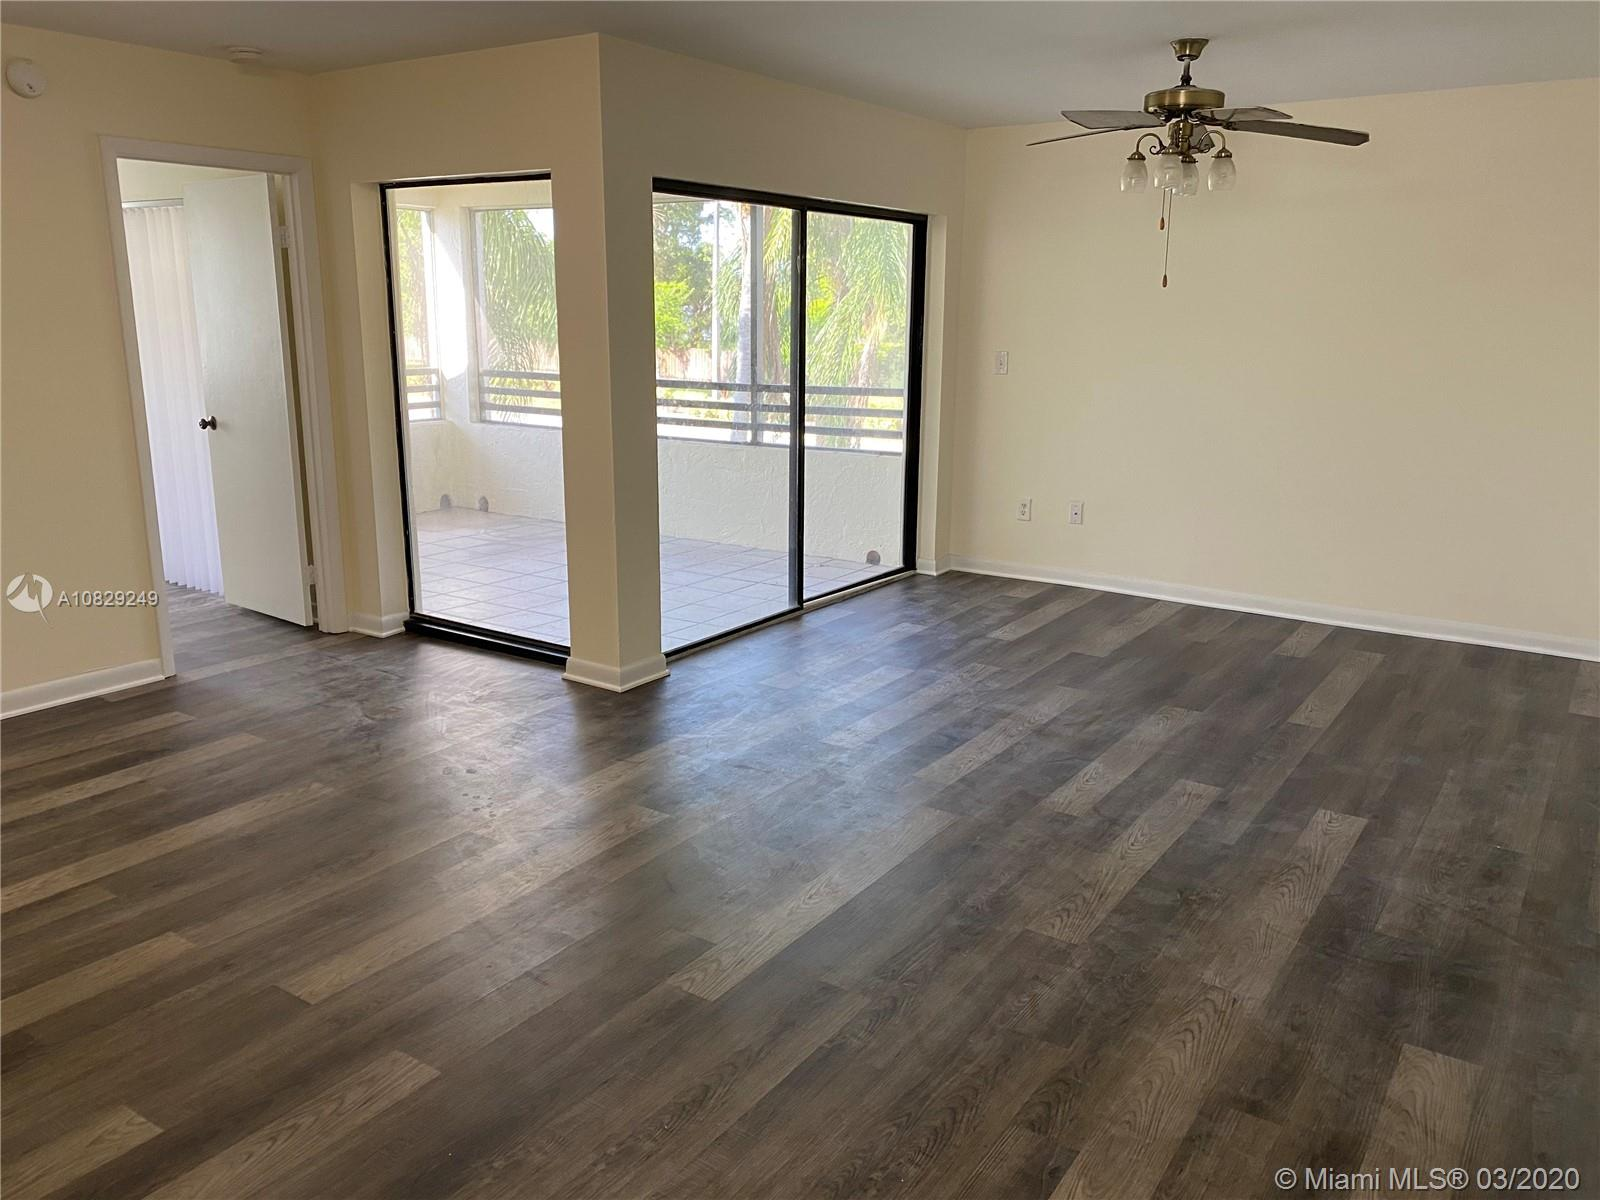 1240 N Hiatus Rd # 1240, Pembroke Pines, Florida 33026, 3 Bedrooms Bedrooms, ,2 BathroomsBathrooms,Residential Lease,For Rent,1240 N Hiatus Rd # 1240,A10829249